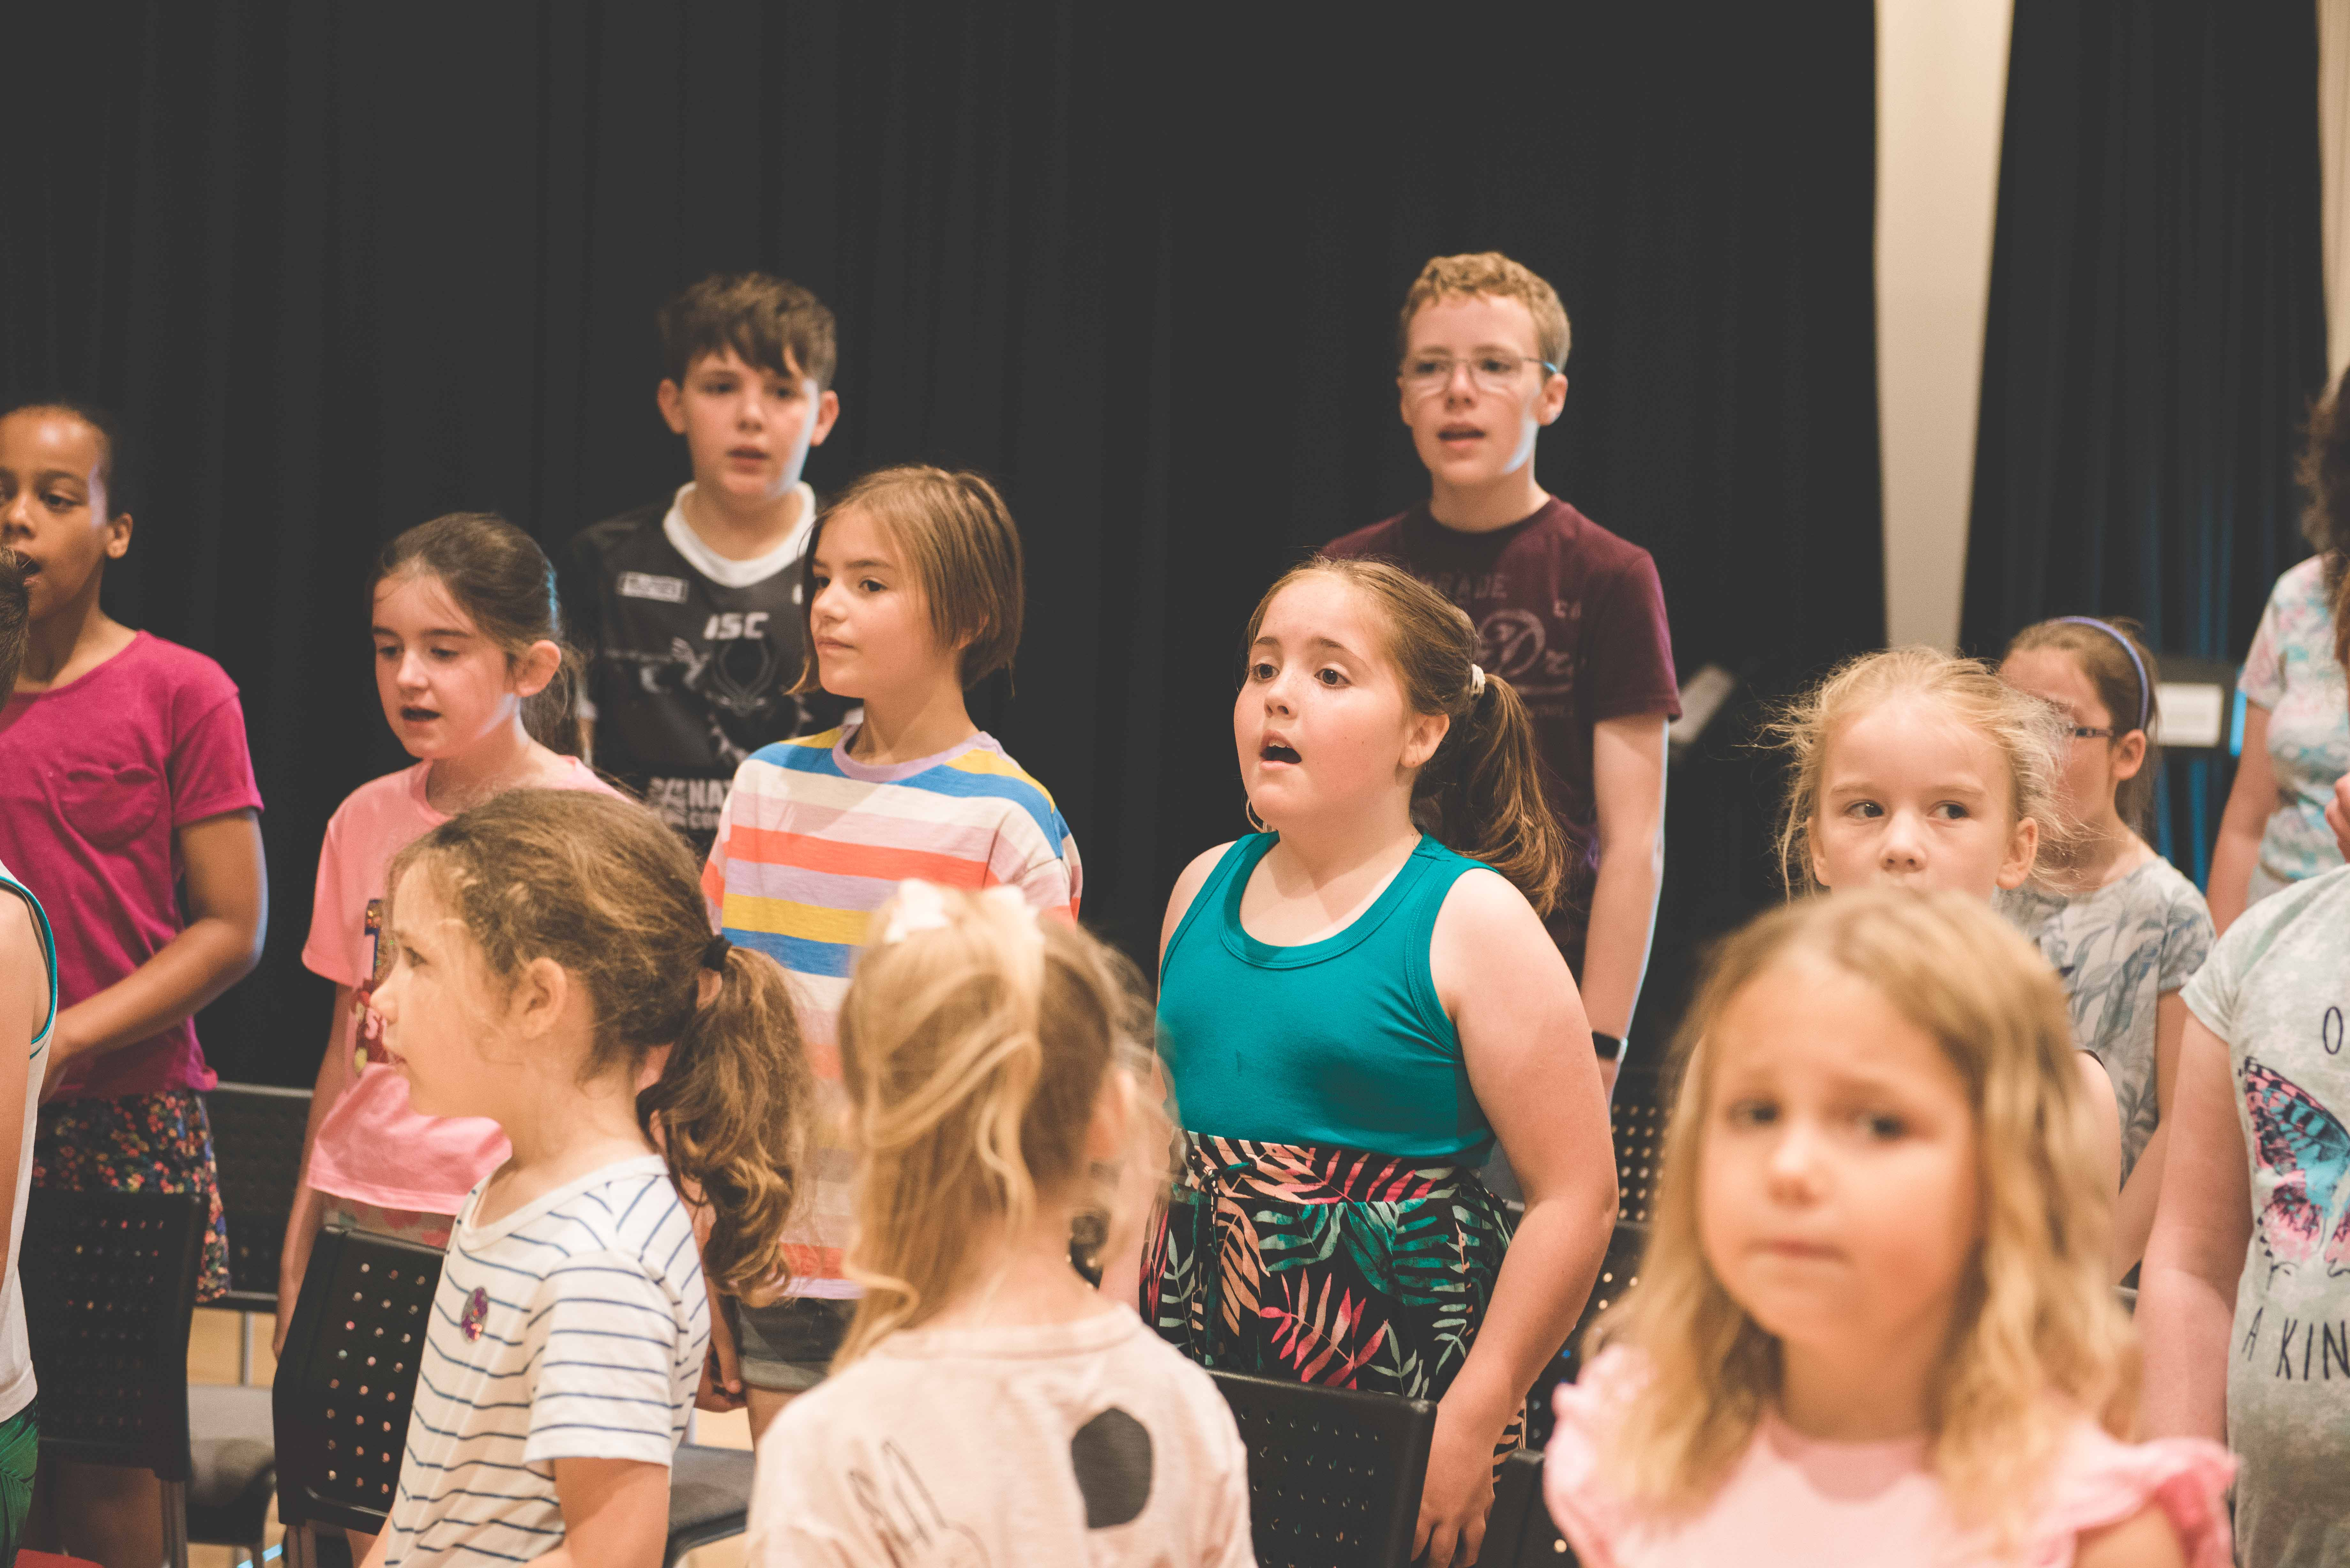 photo of group of young students singing focussing on young girl singing enthusiastically